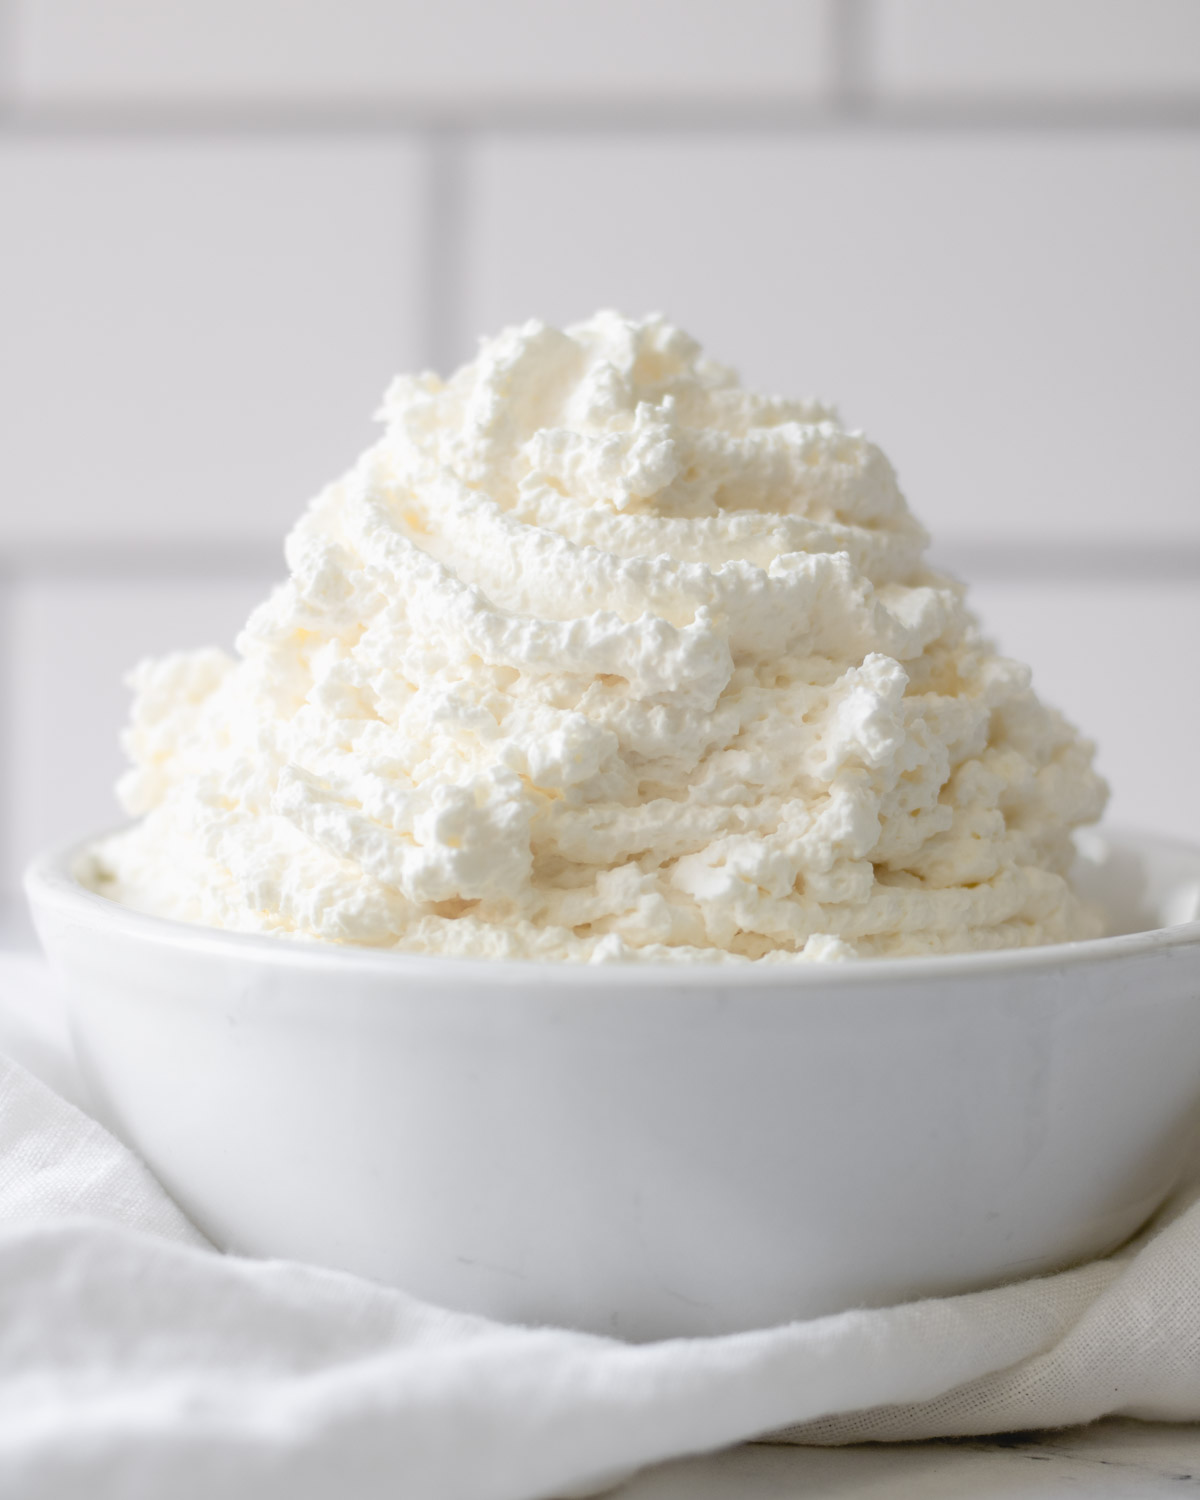 whipped cream piled into a bowl piled high.